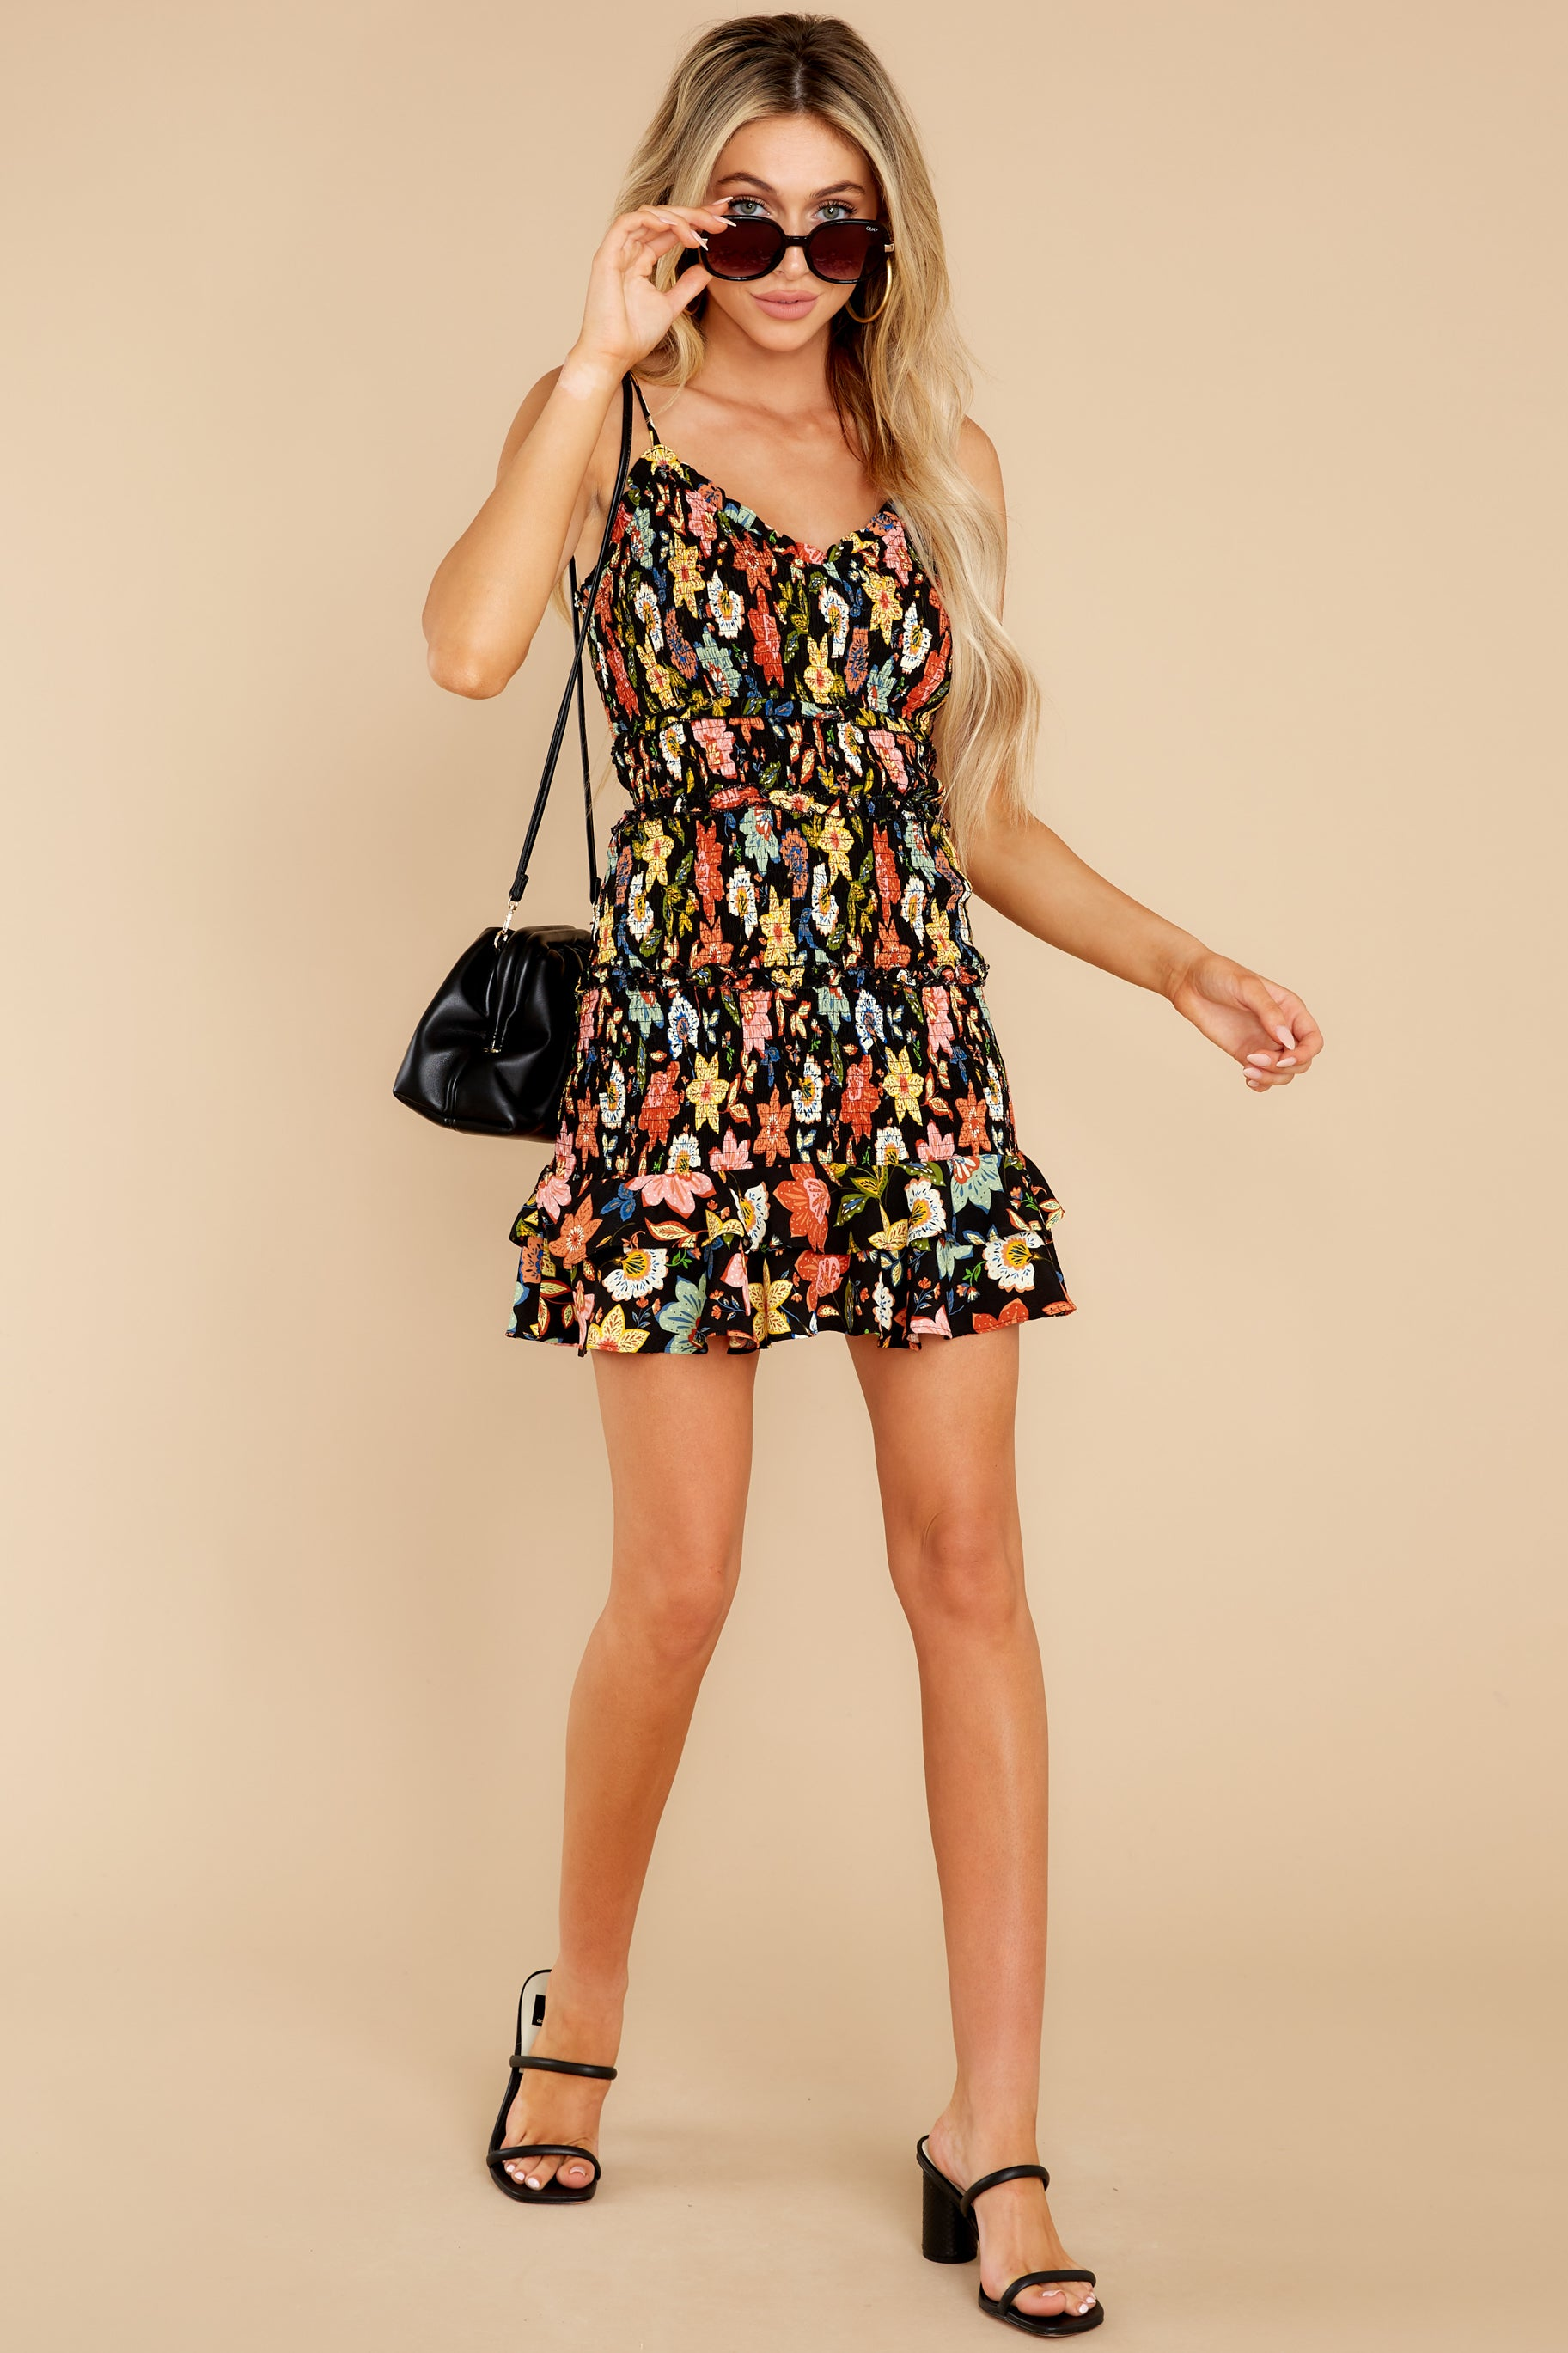 2 I'm Used To It Black Floral Print Dress at reddress.com